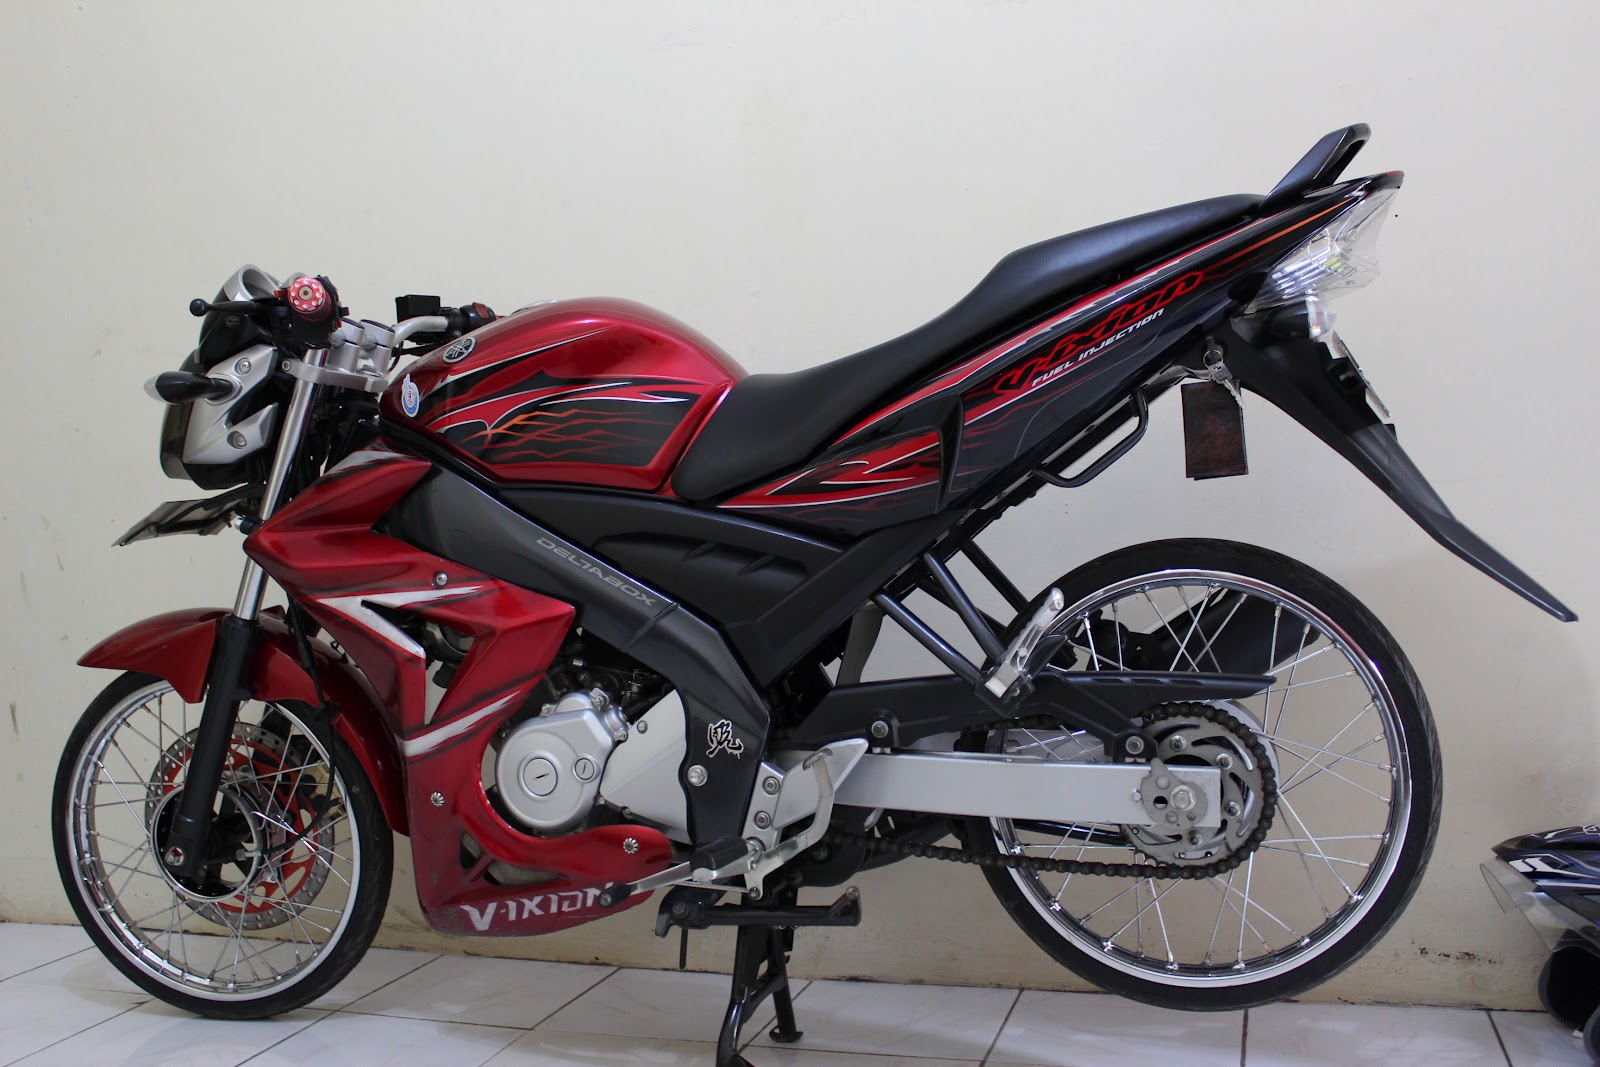 Alif Woody Modifikasi V Ixion Velk Jari Jari